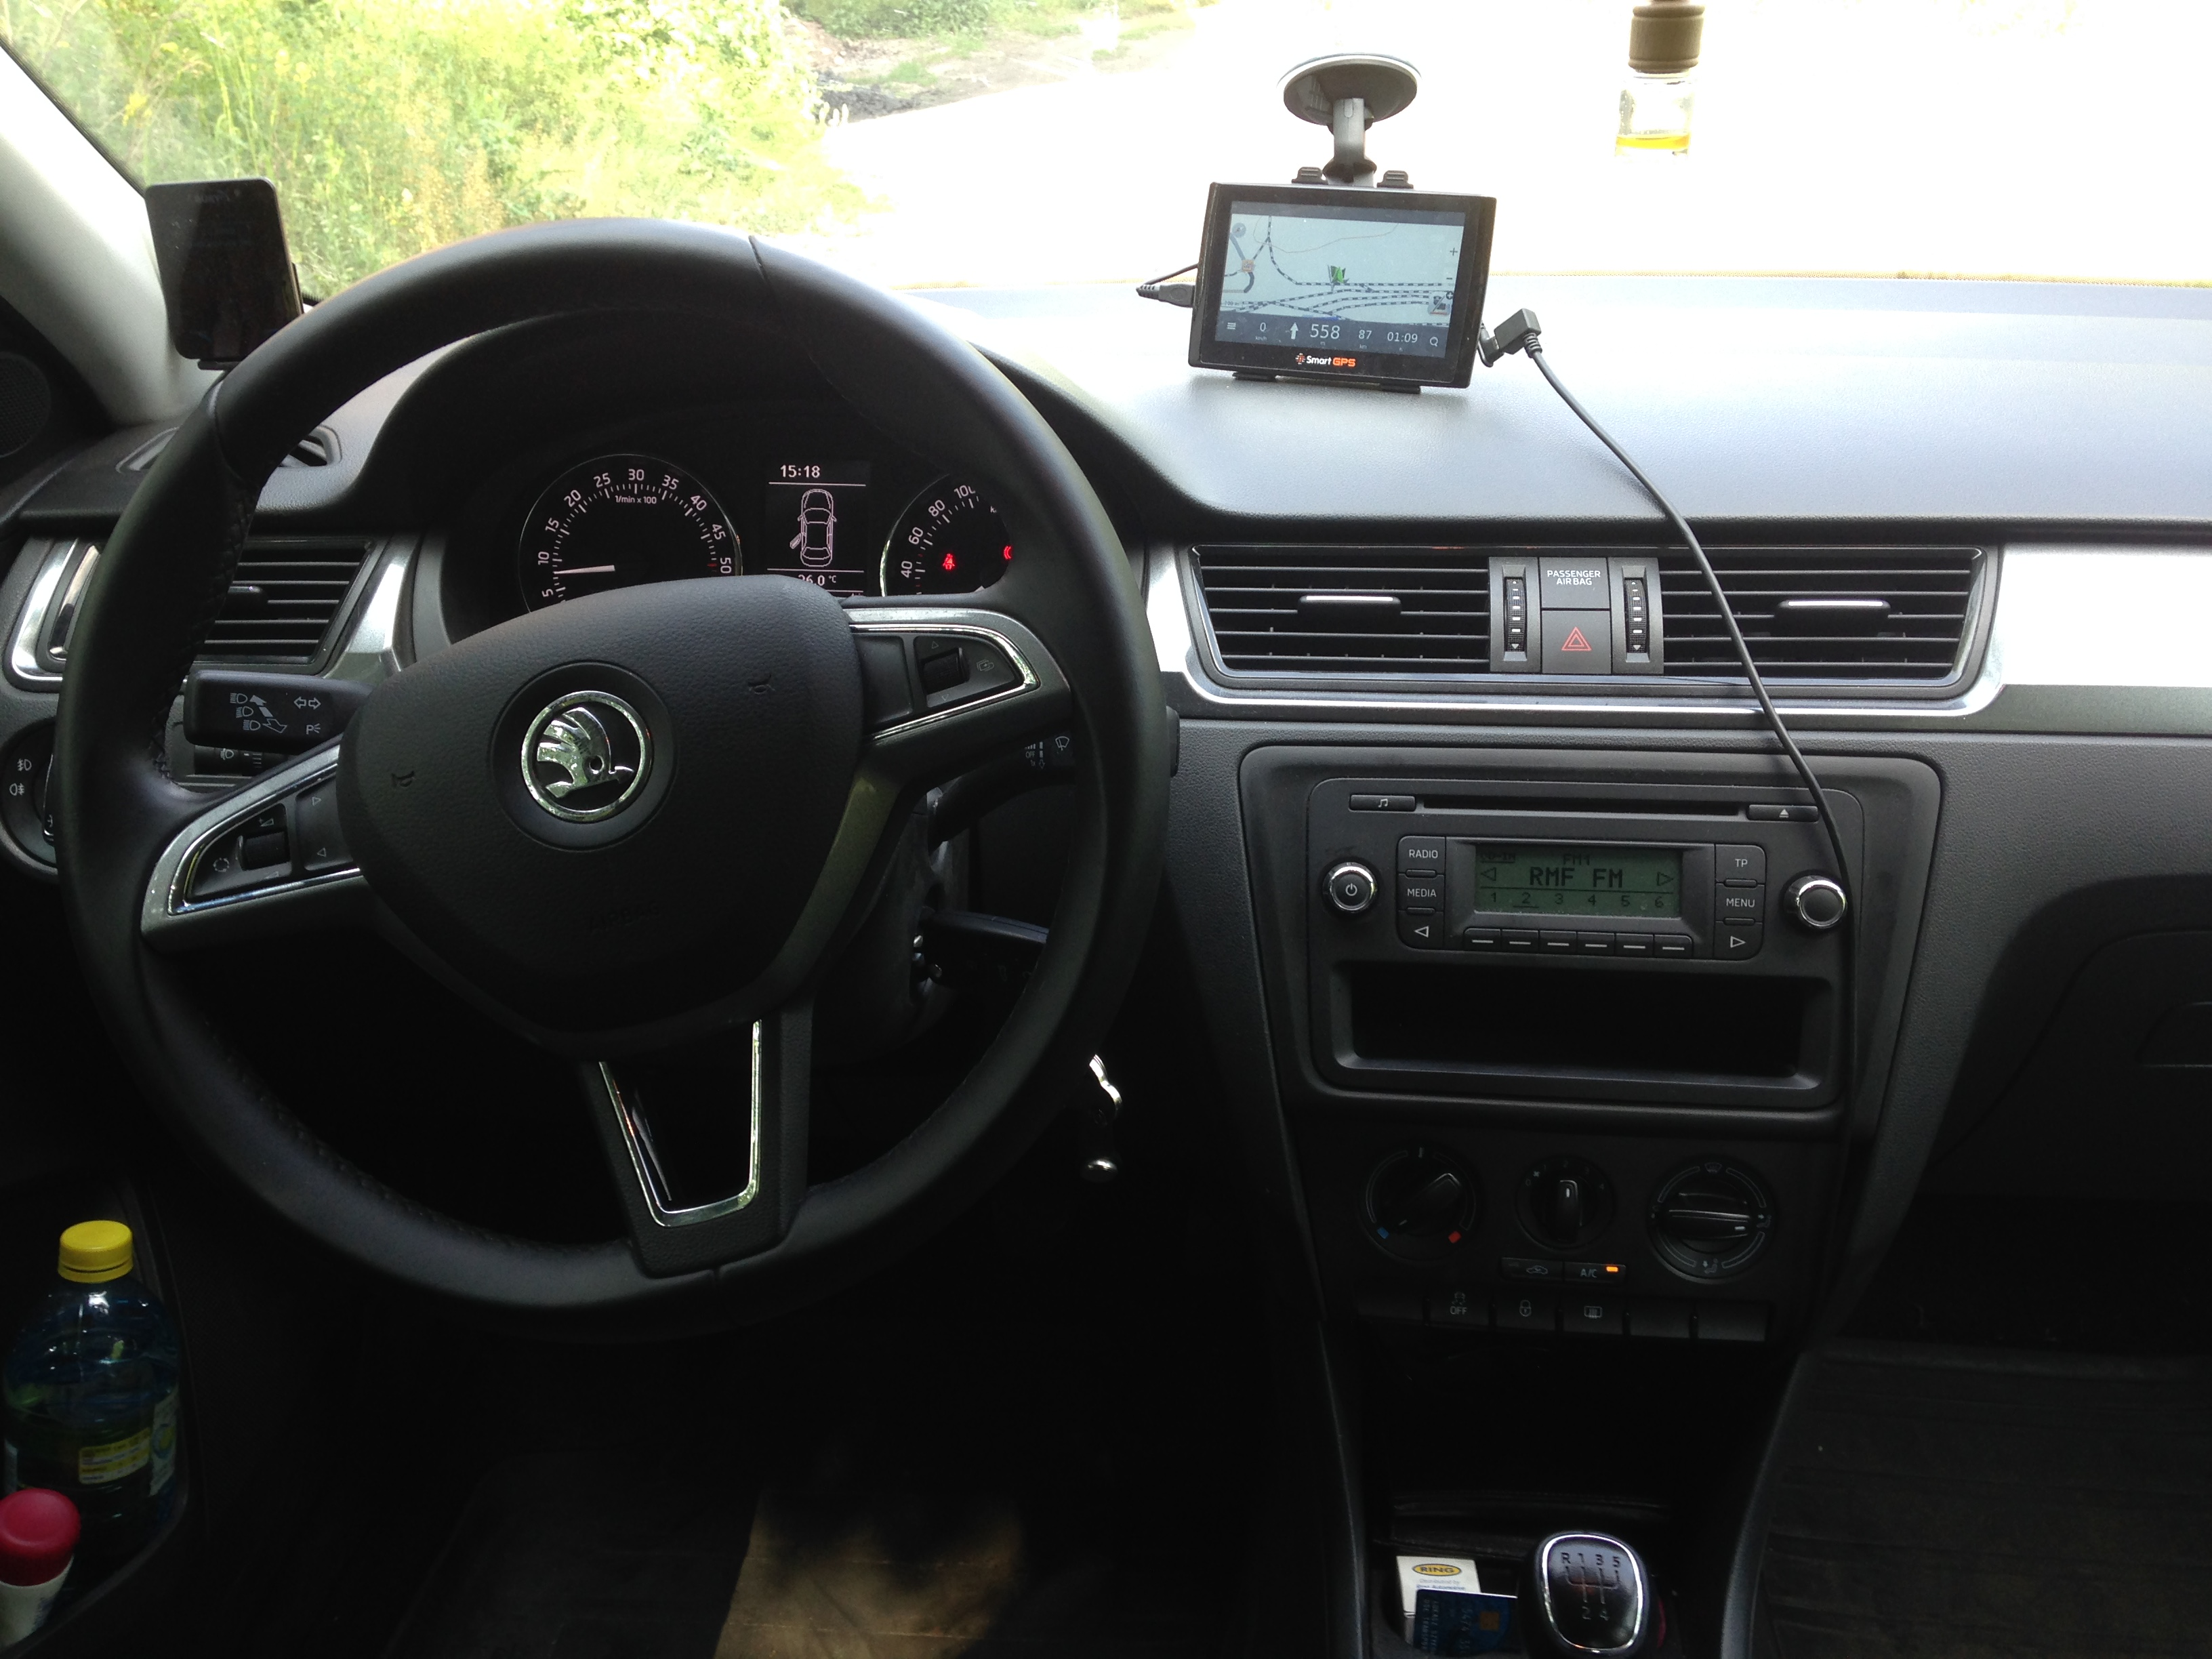 File Skoda Rapid 1 6 Tdi Interior Jpg Wikimedia Commons